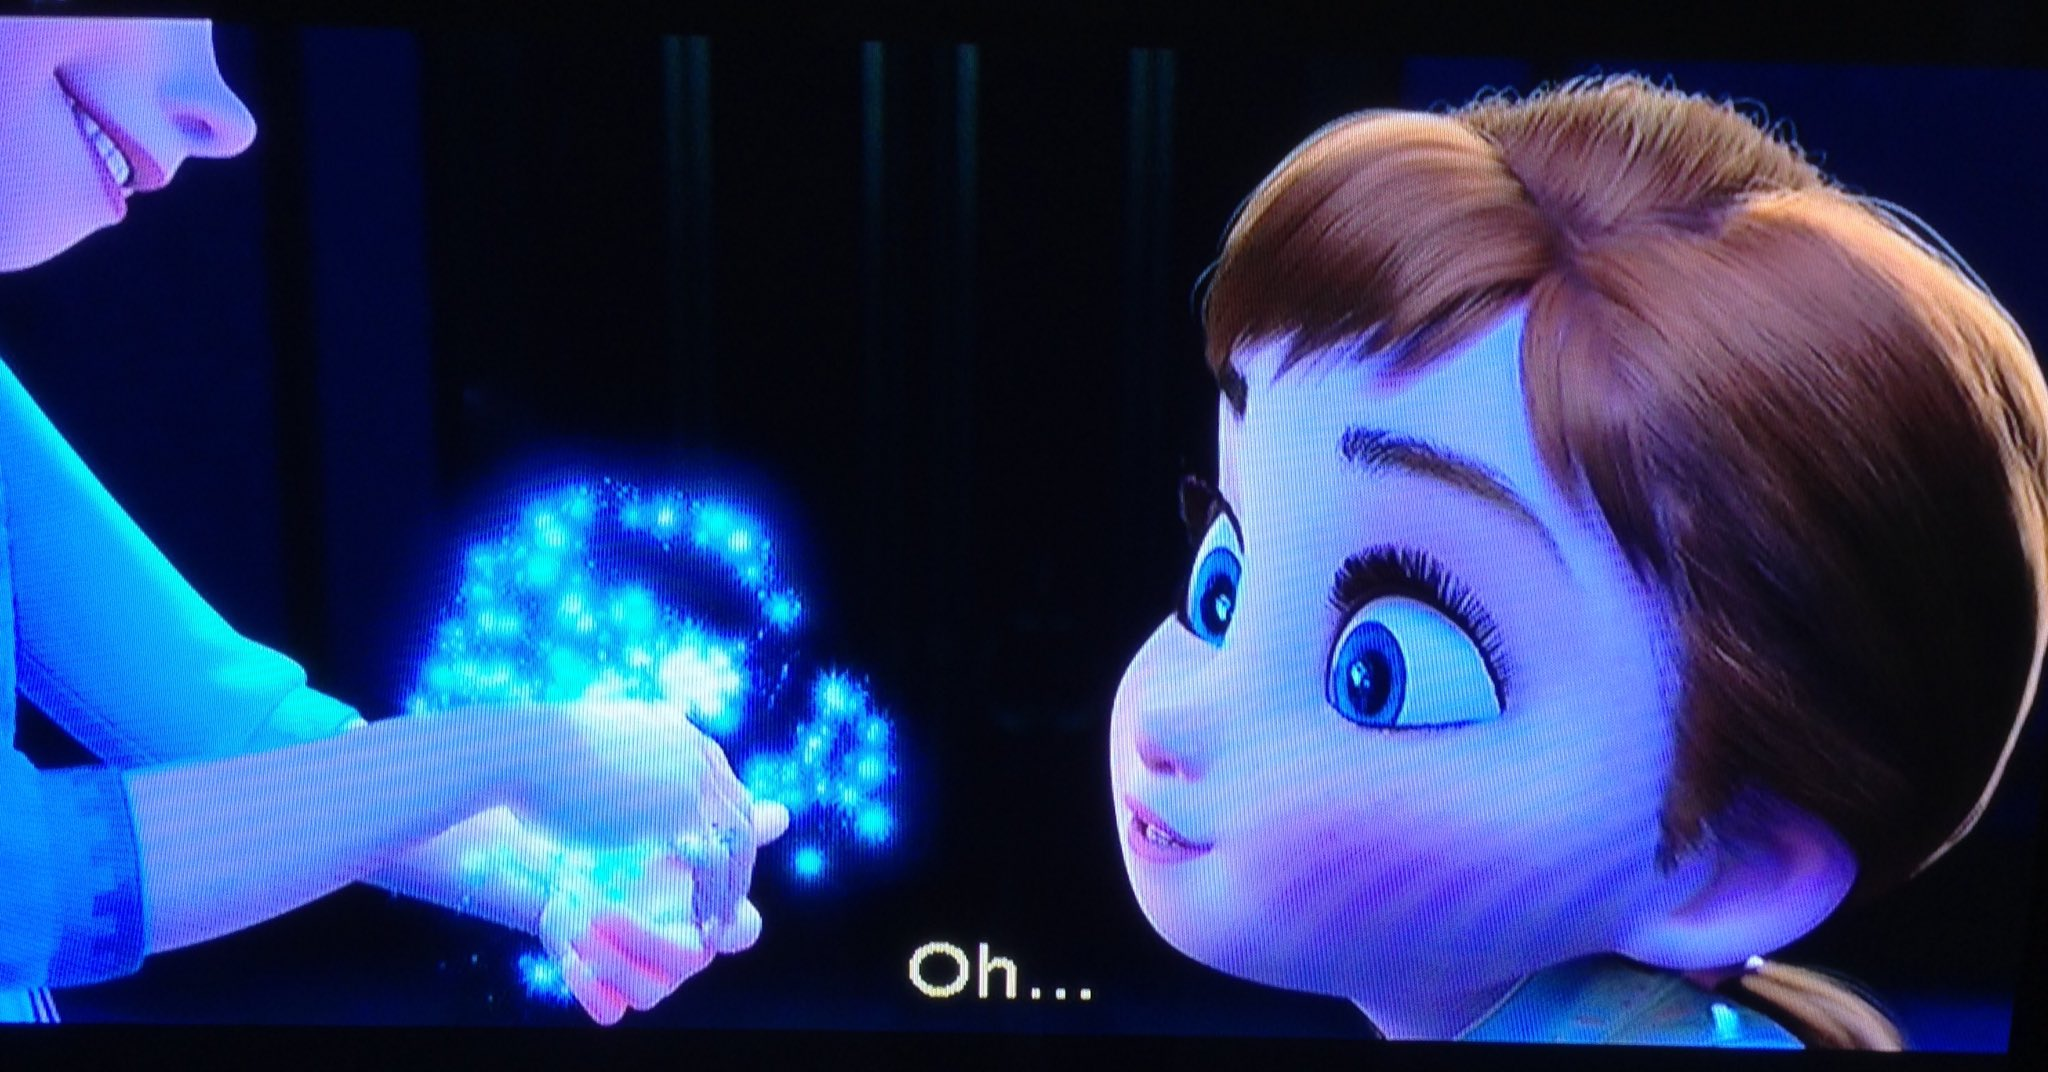 There's also lots to talk about RE Elsa's powers, but we'll get there. For now, I love how they're introduced. #Frozen https://t.co/9VnQsrrSnT